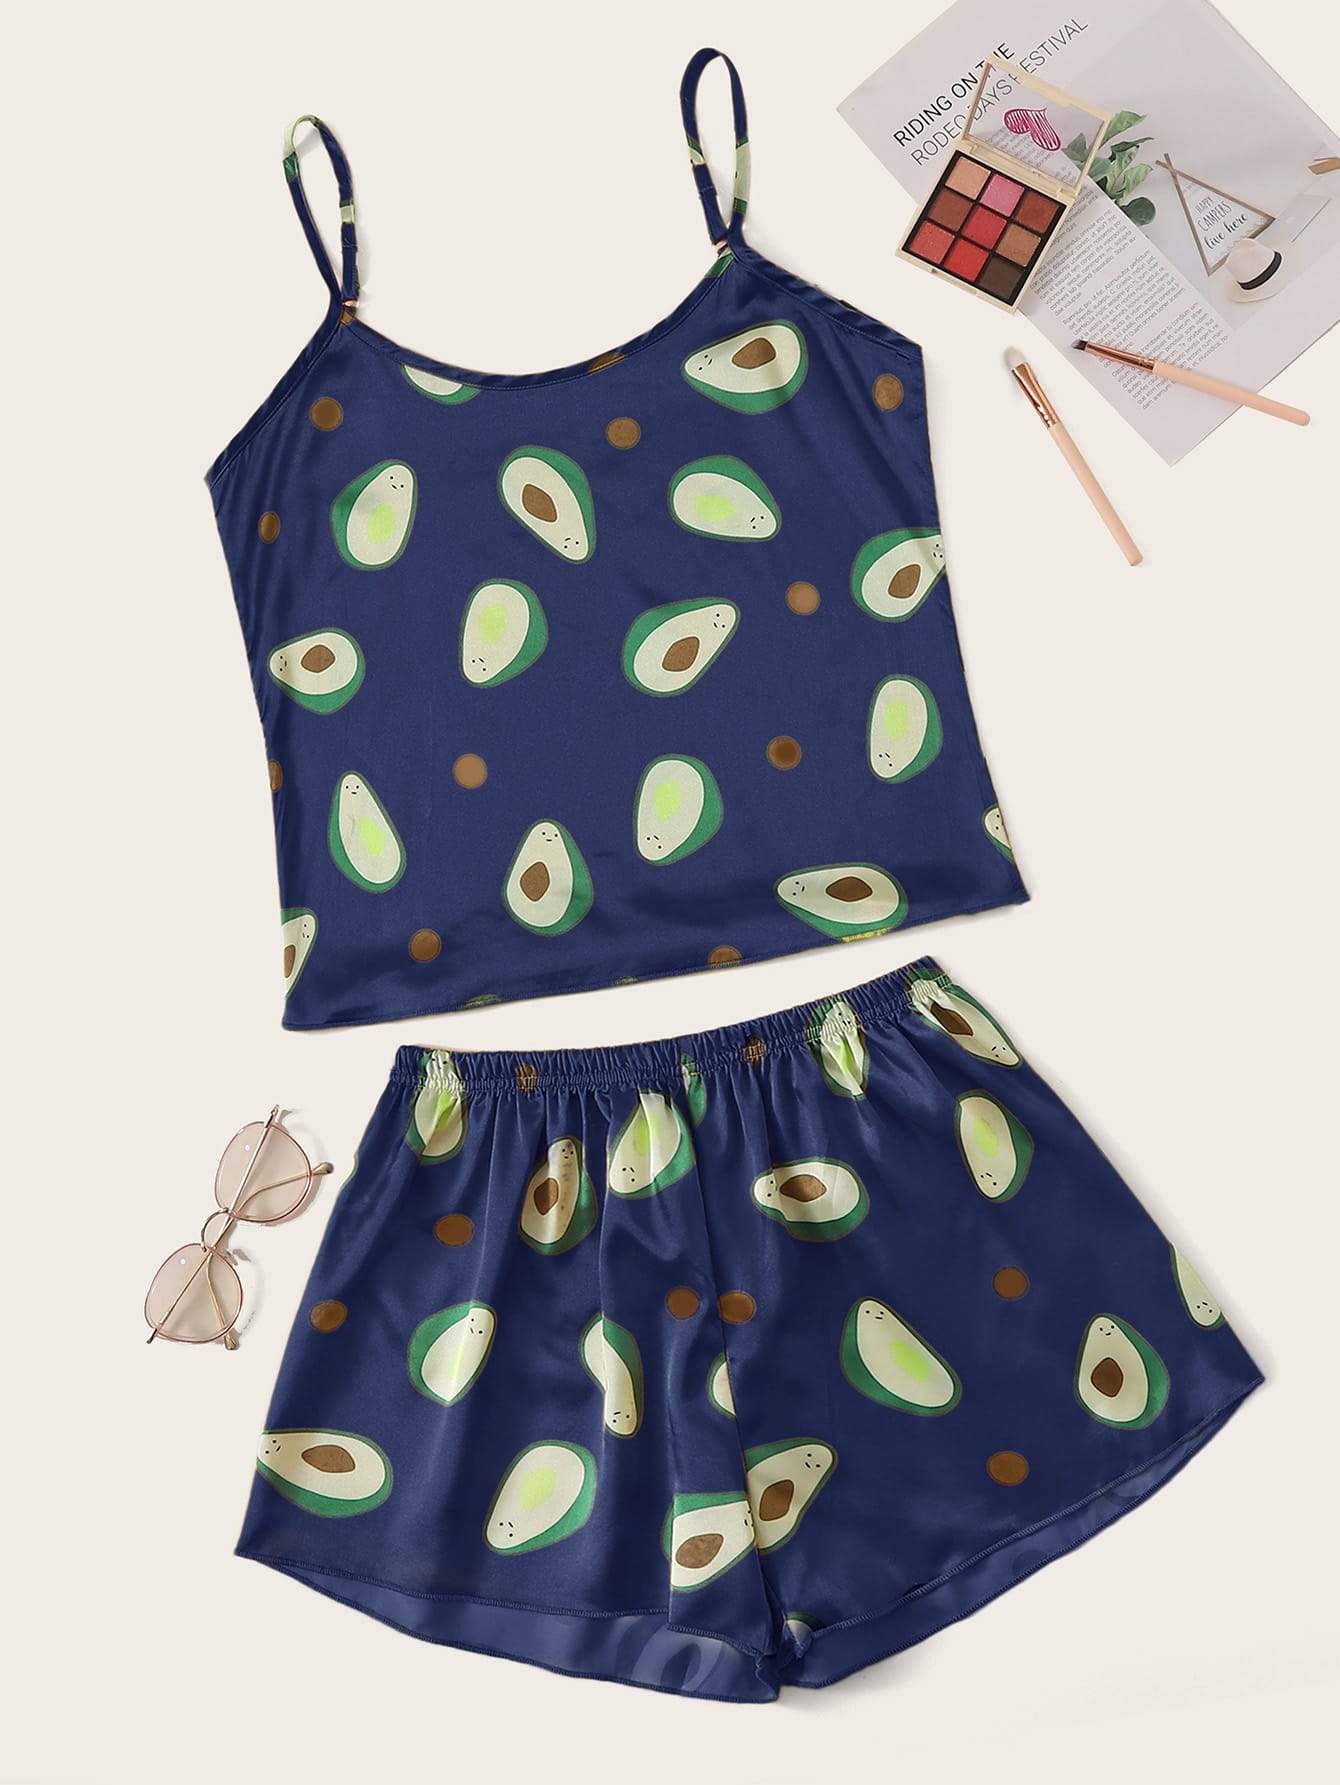 Avocado Print Satin Cami Pajama Set - FLJ CORPORATIONS